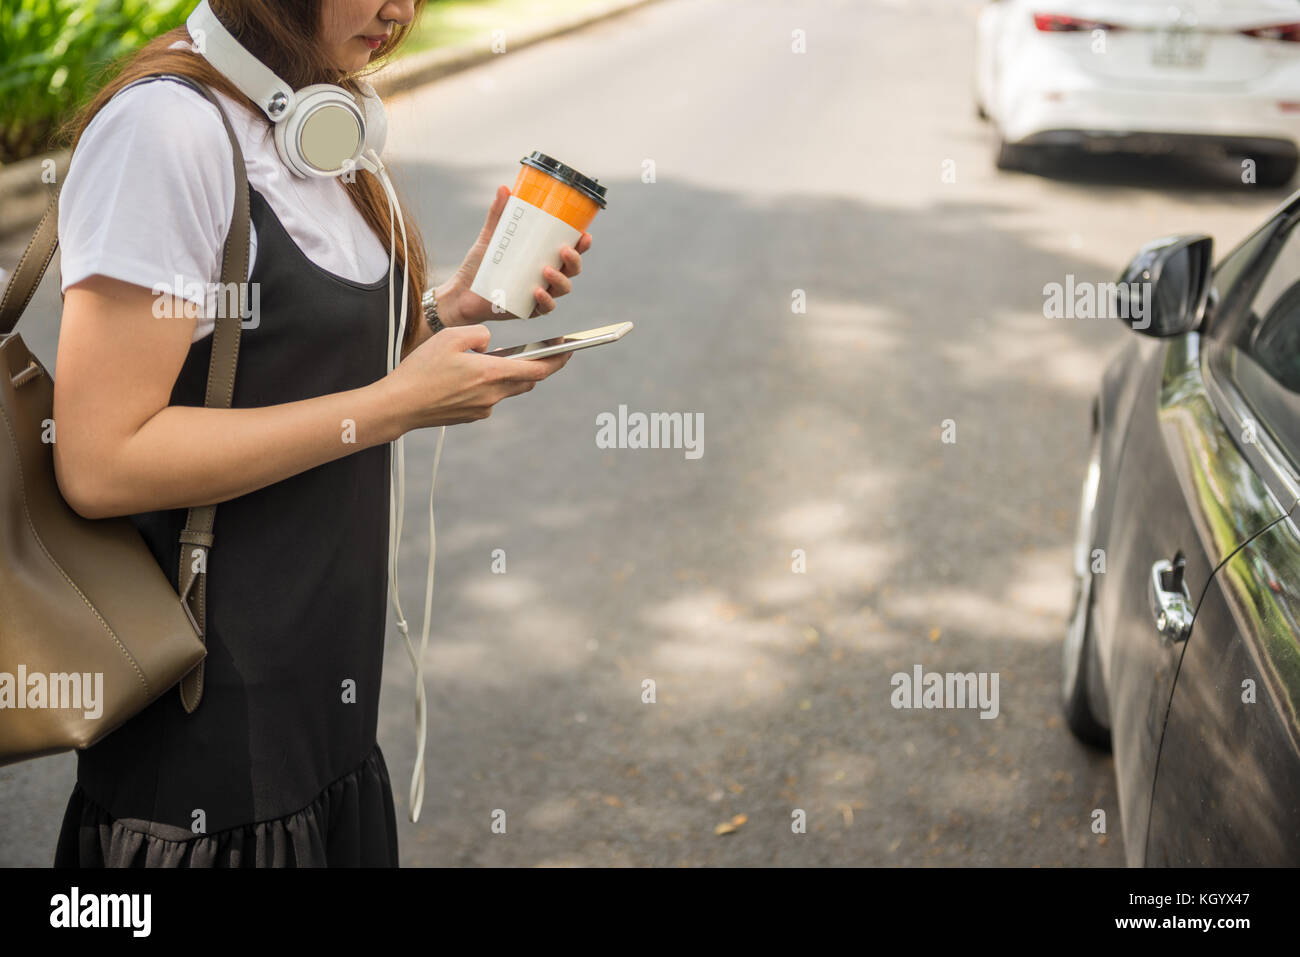 Modern woman holding coffee and checking email on smart phone - Stock Image